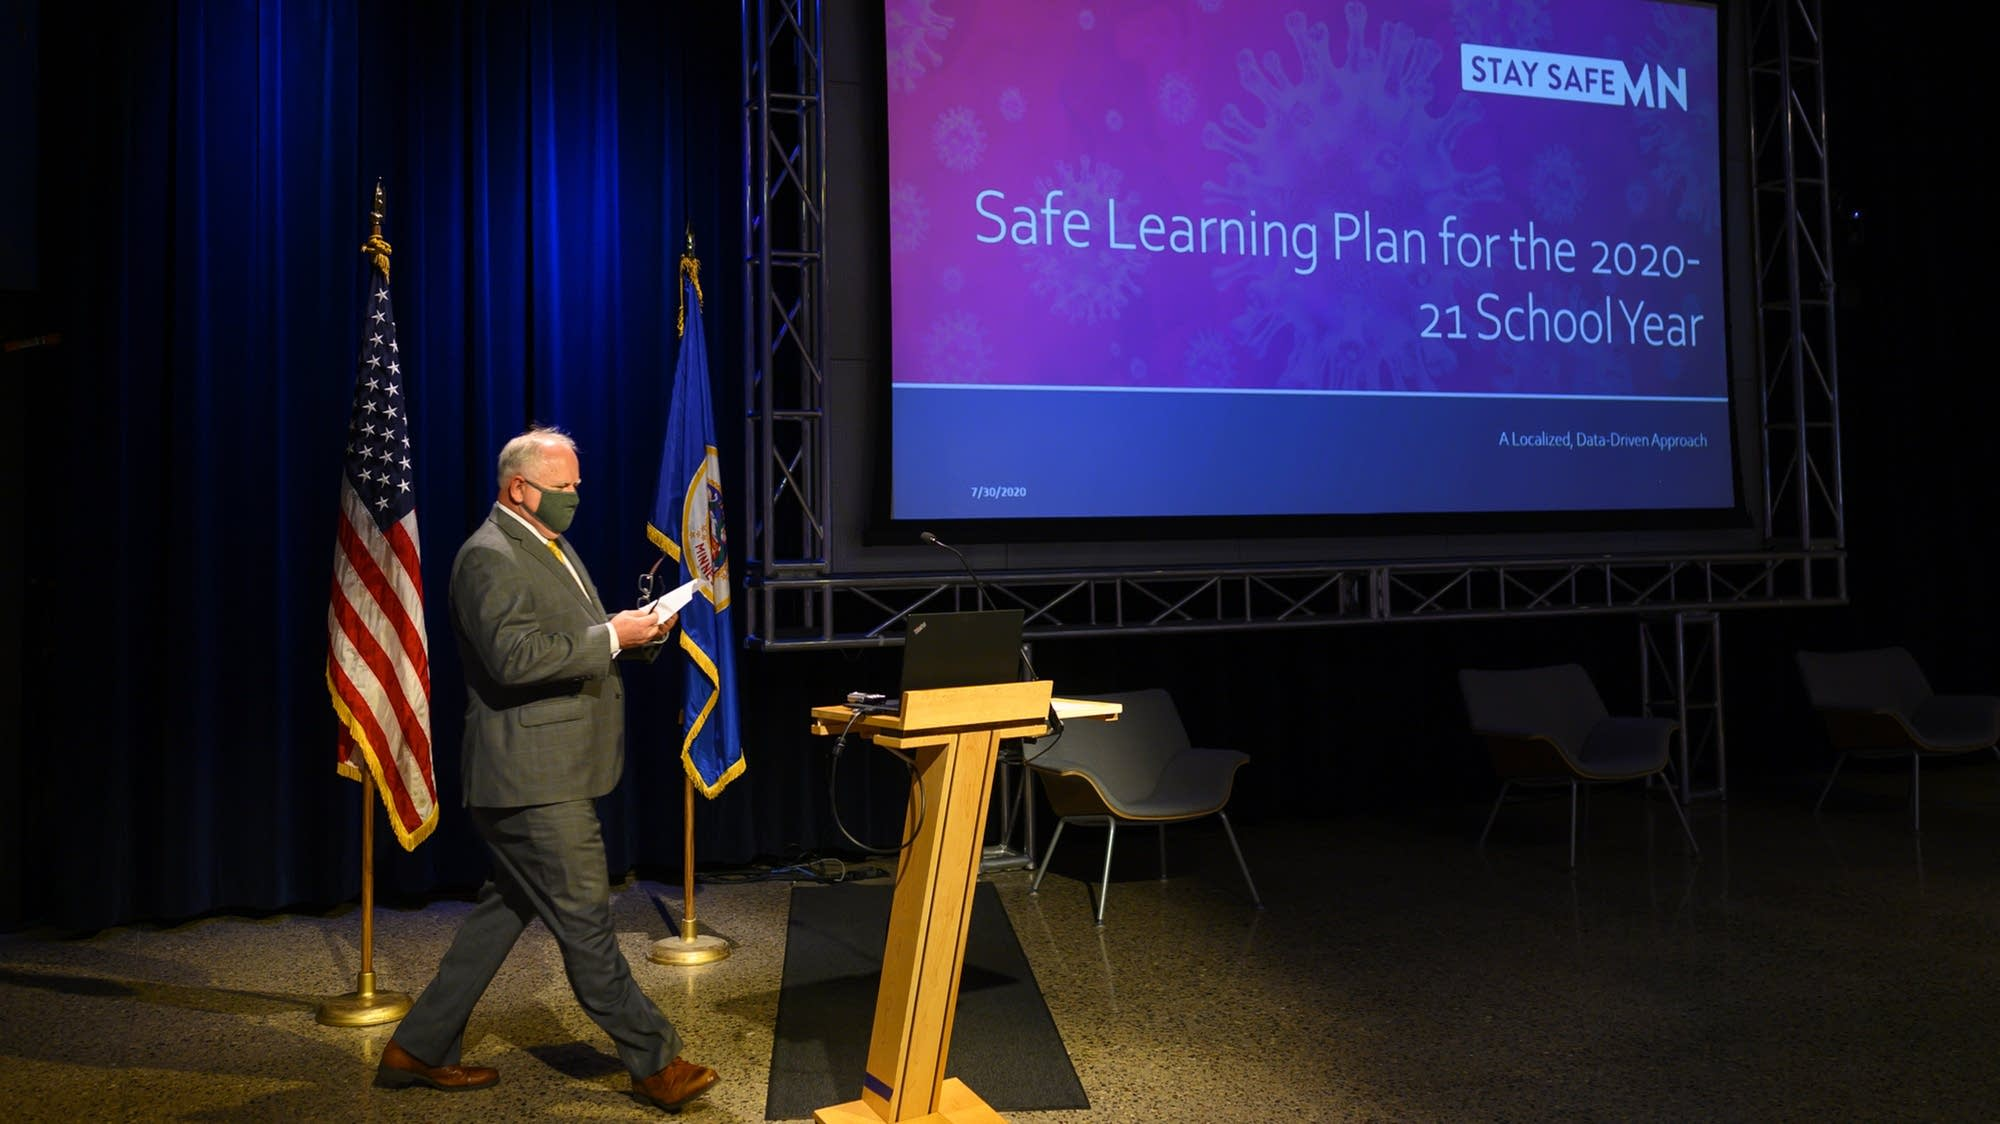 COVID-19 in MN: School guidance shifts with case counts